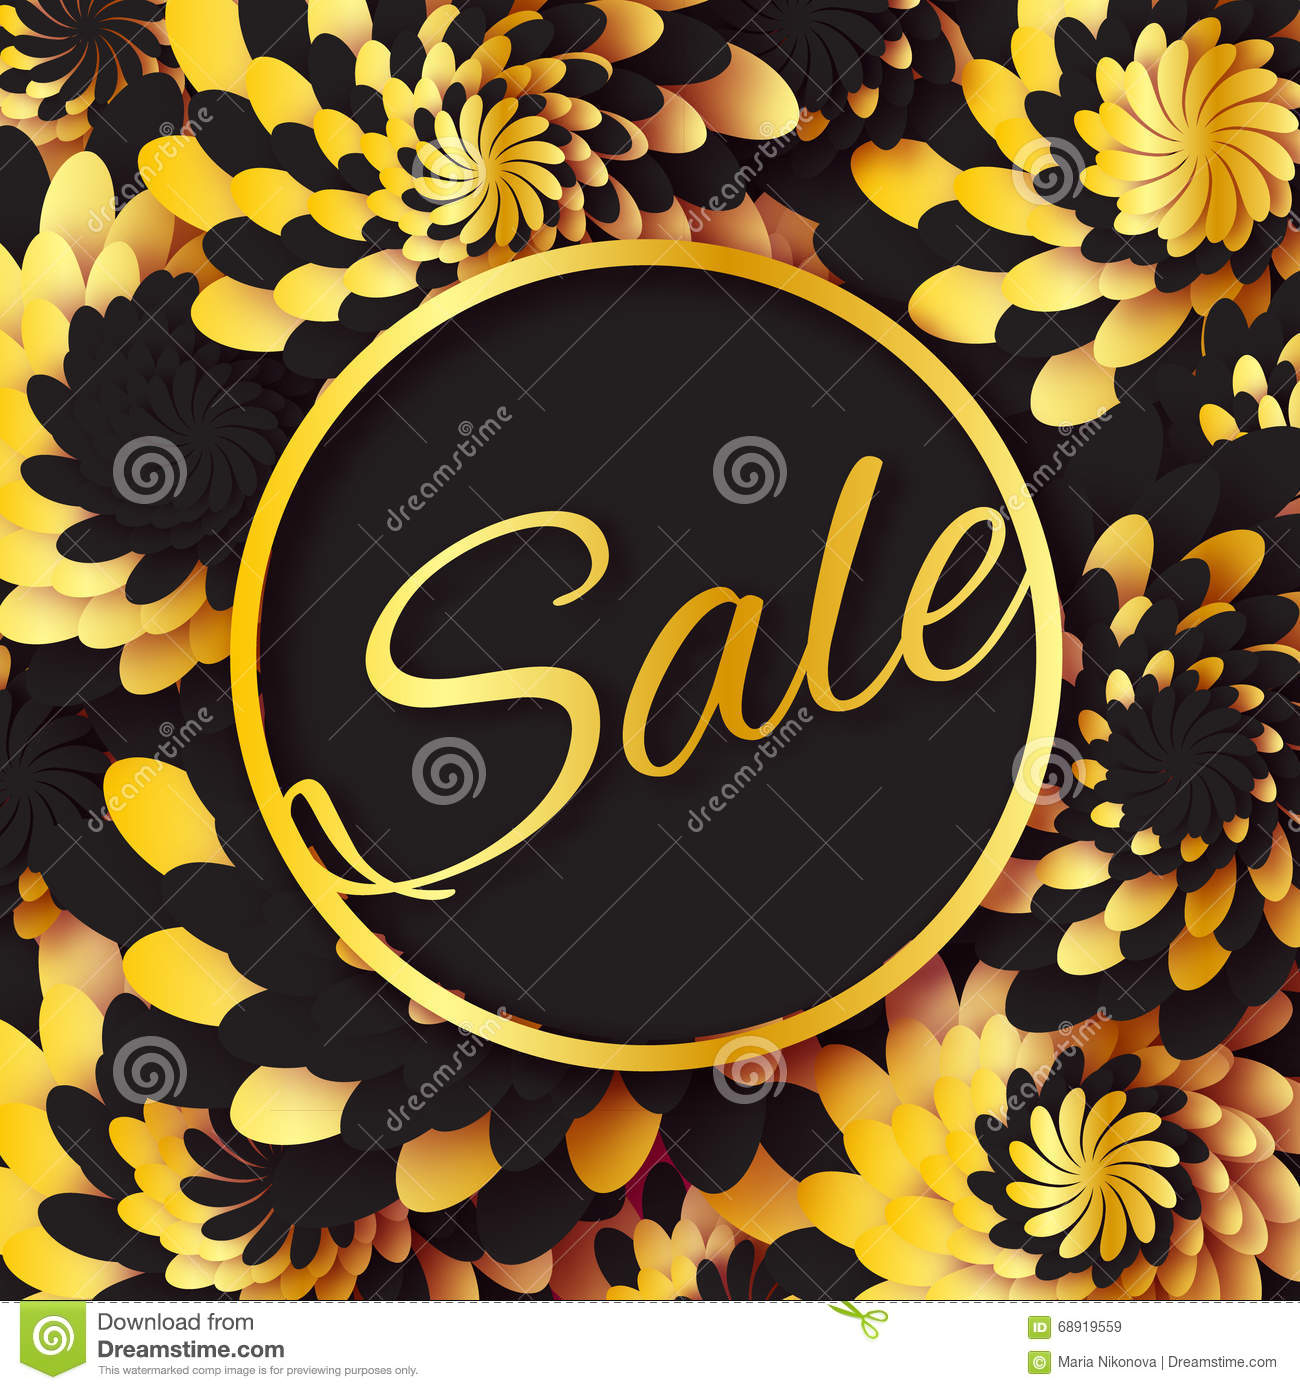 Golden foil spring summer sale banner with frame for business golden foil spring summer sale banner with frame for business applique card with origami flowers offers message trendy design template for card vip mightylinksfo